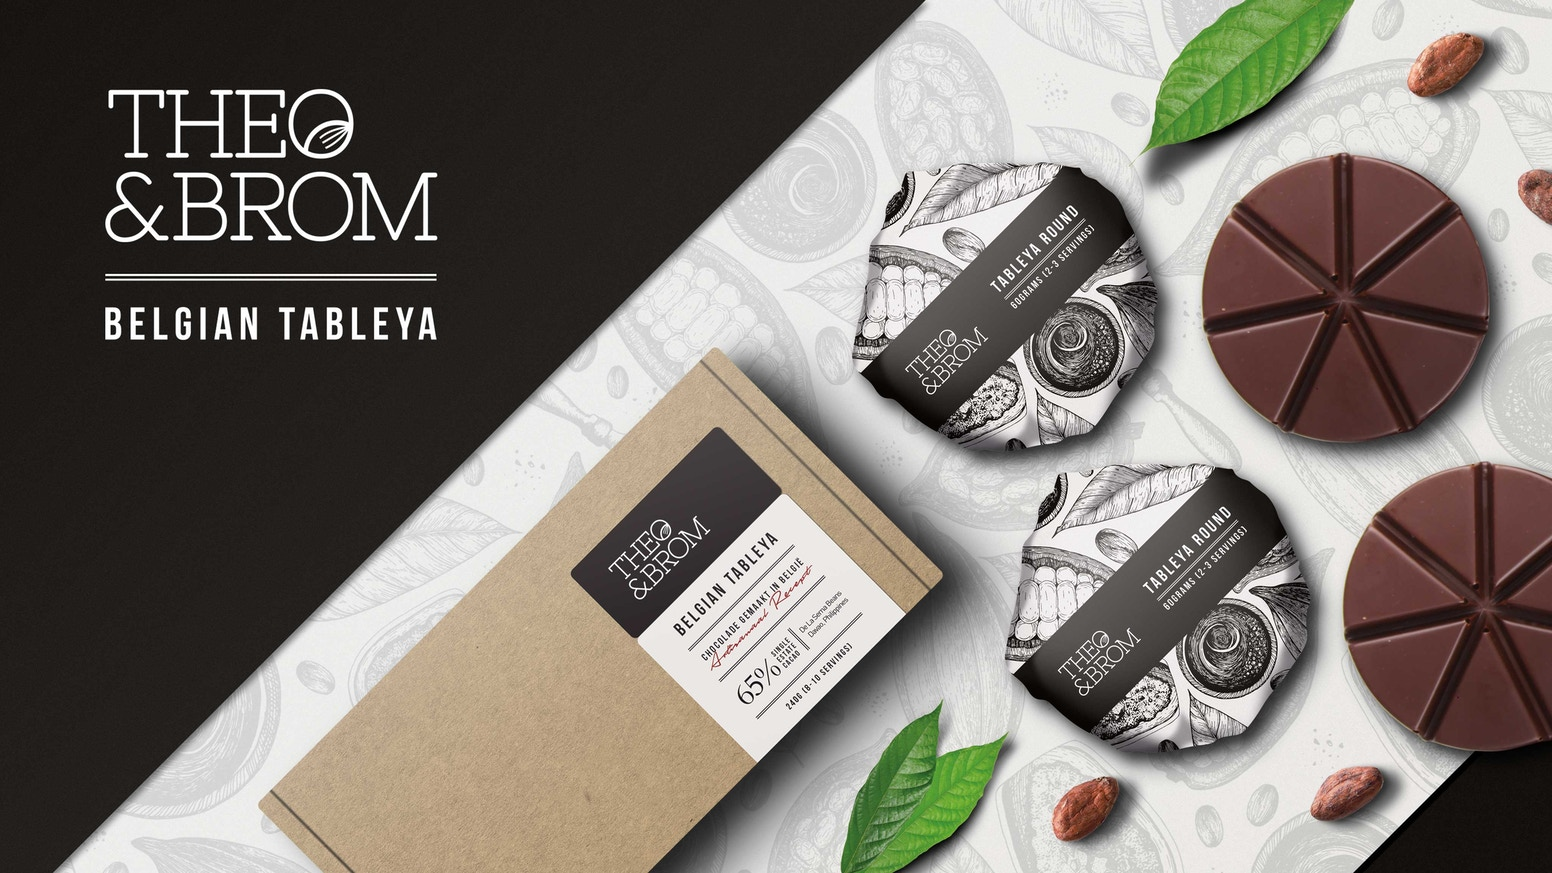 Philippine Cacao Beans and Belgian Chocolate-Making Expertise